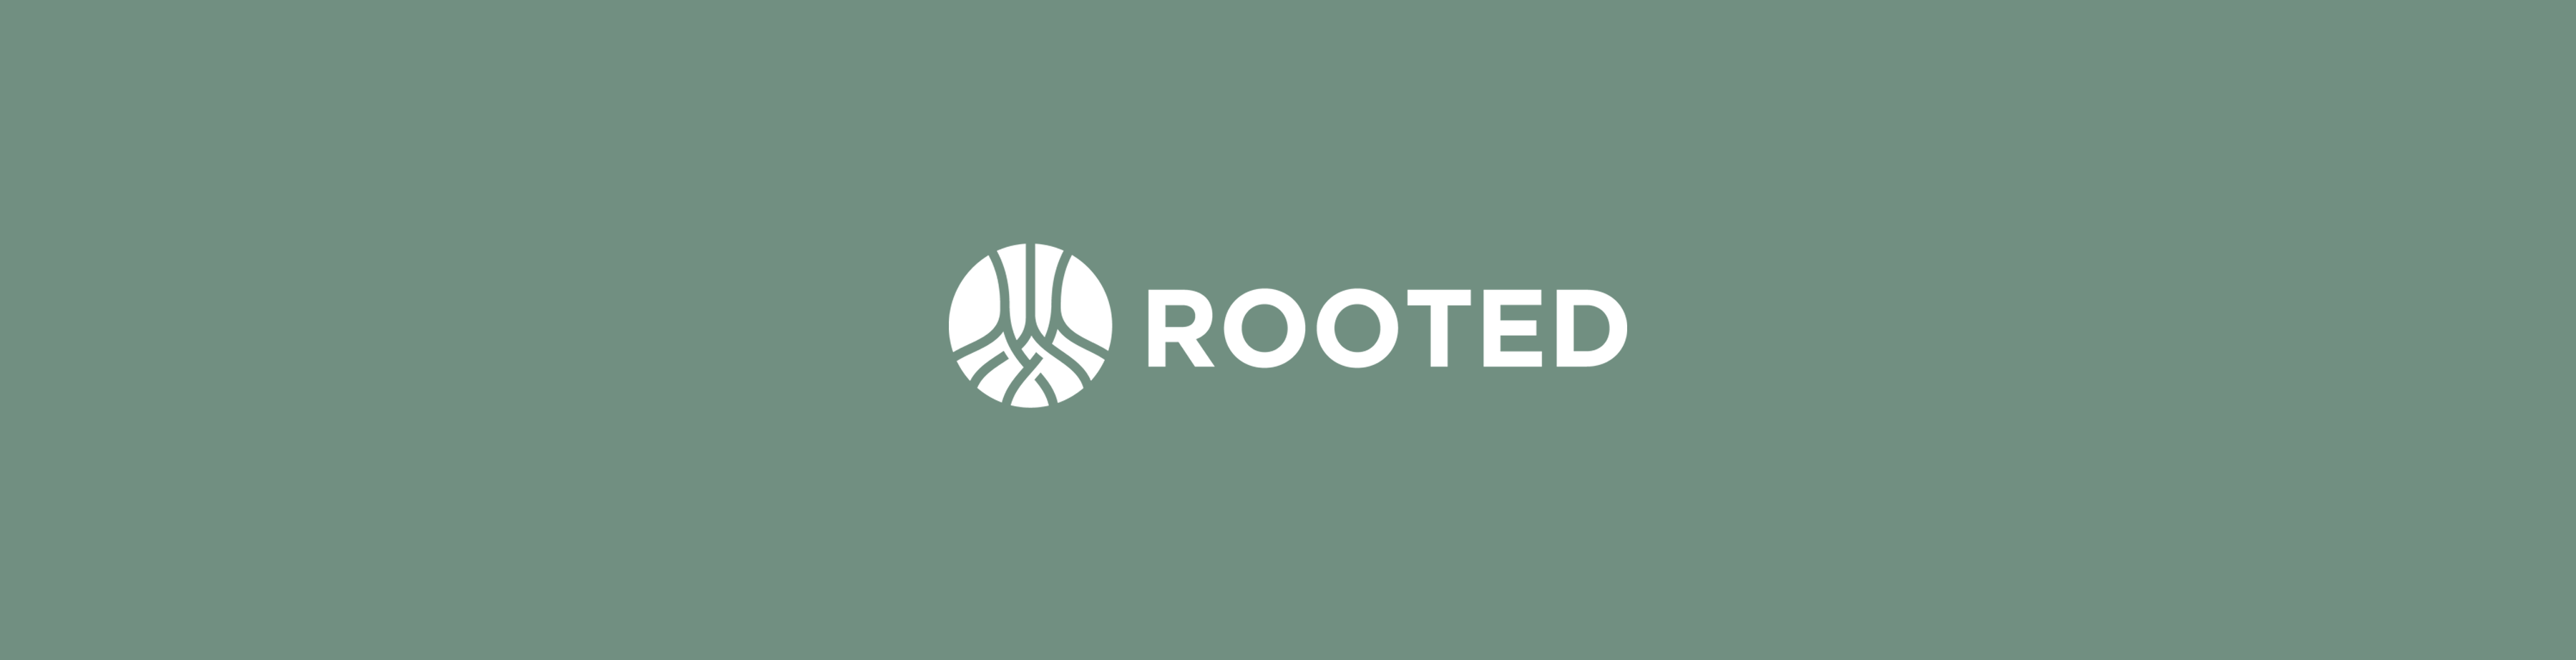 rooted header image